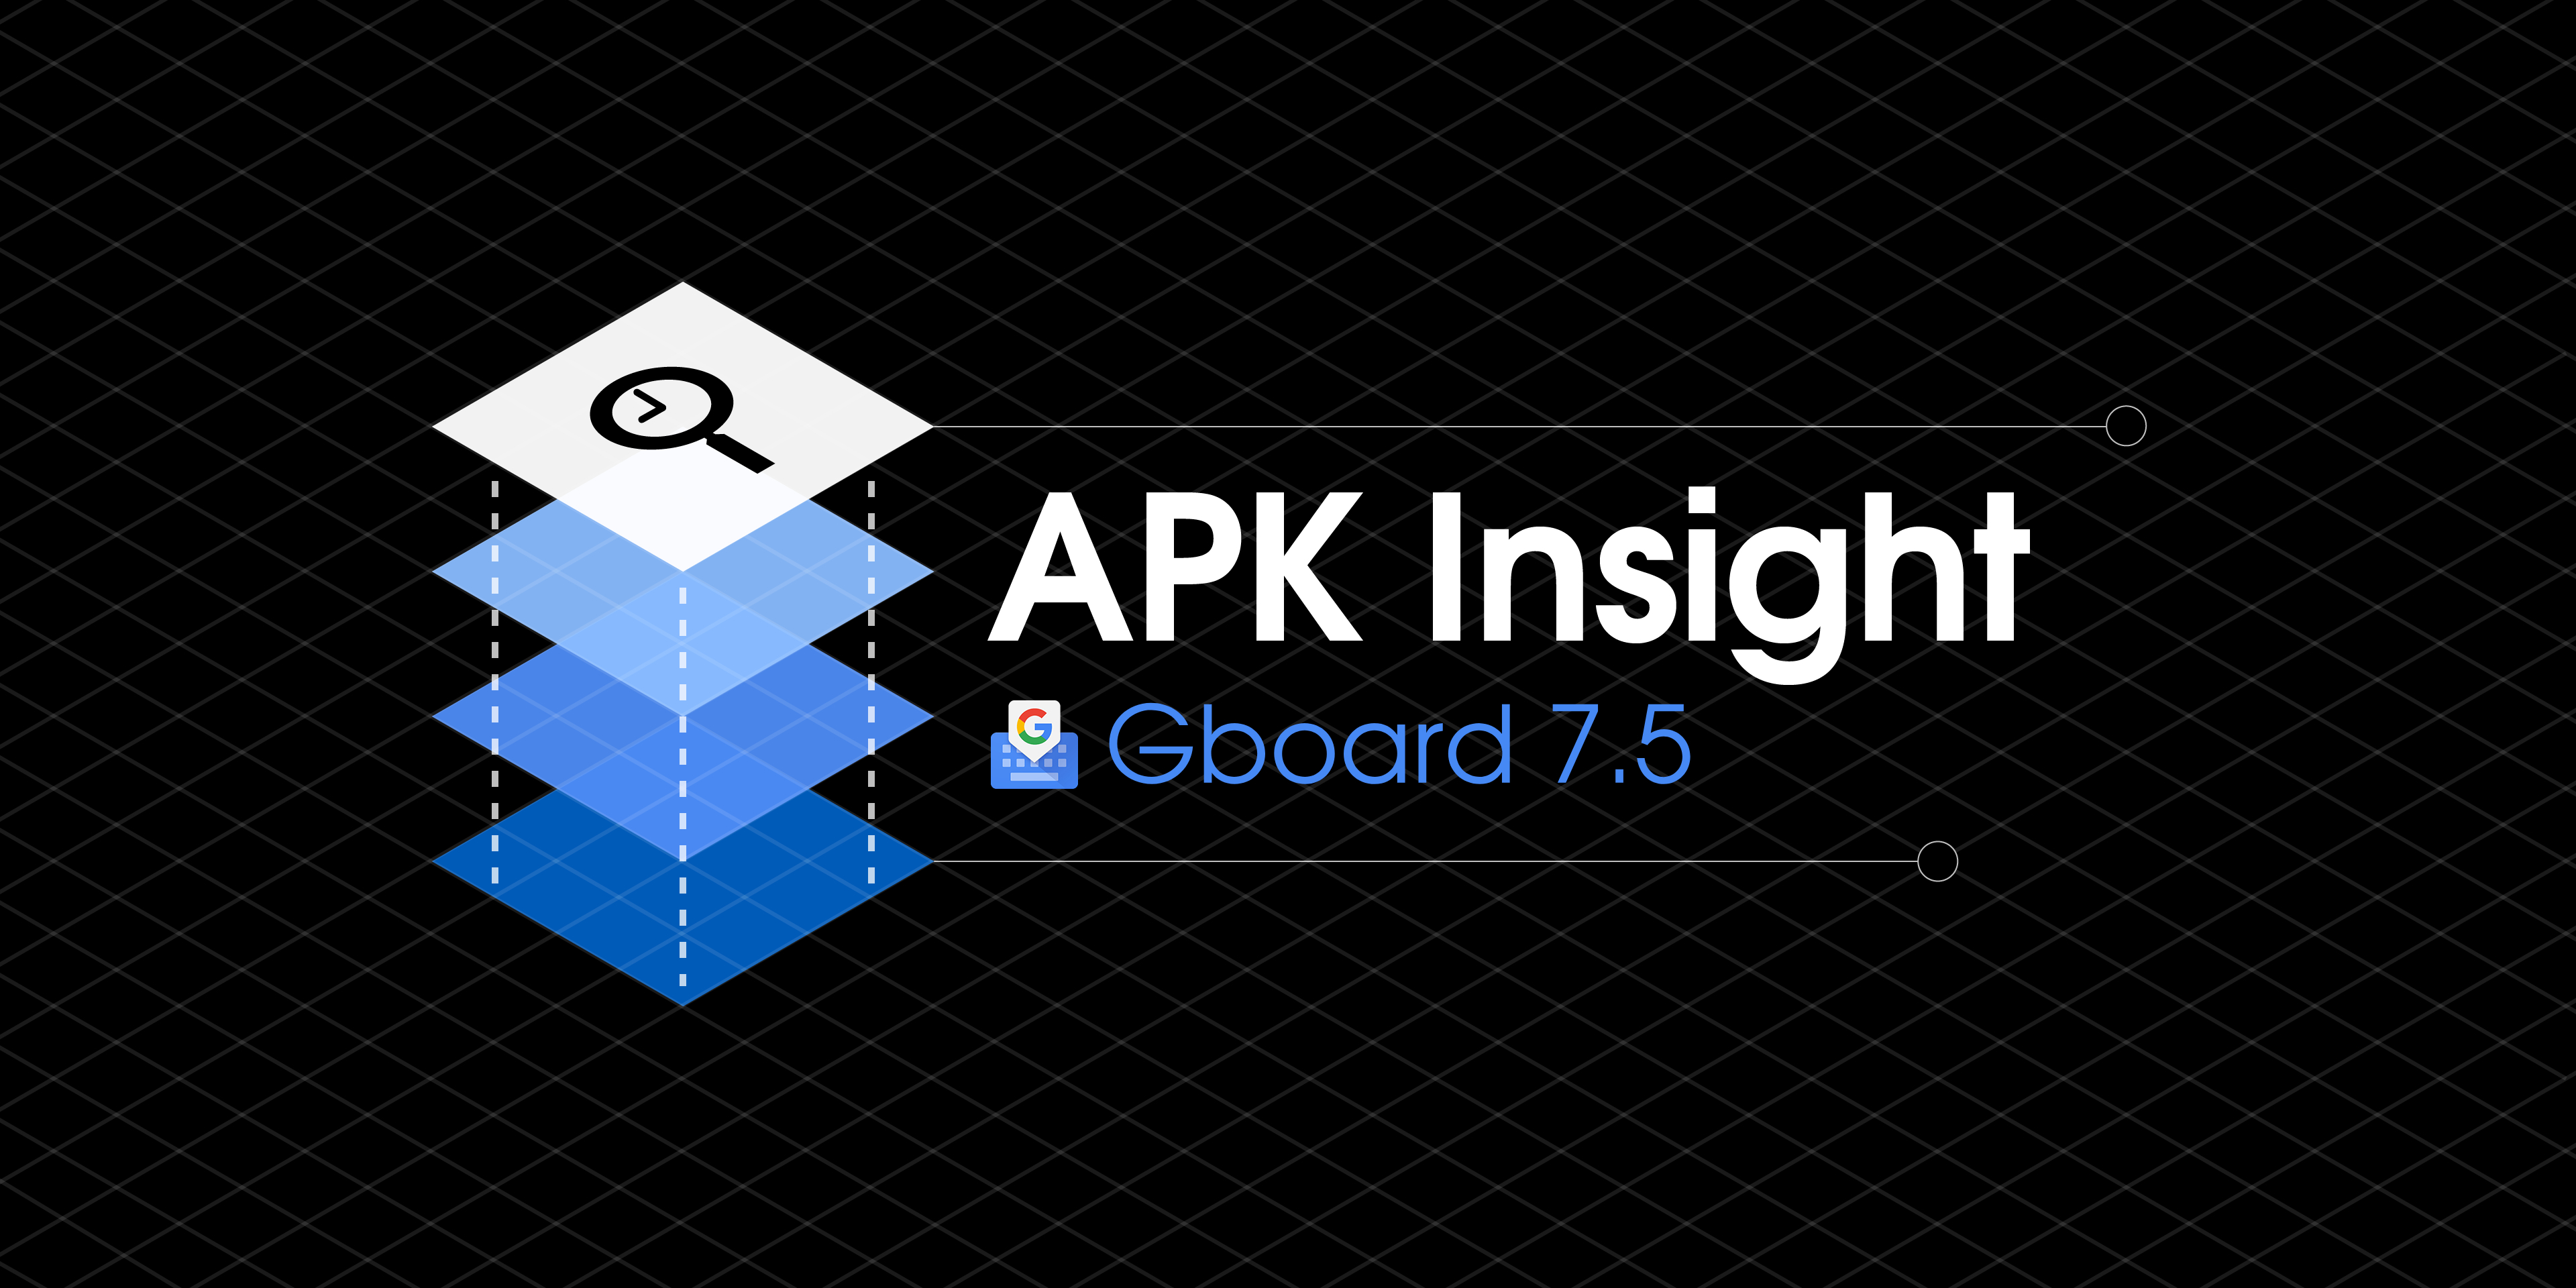 gboard 7 5 beta preps clipboard manager floating keyboard smarter search apk insight